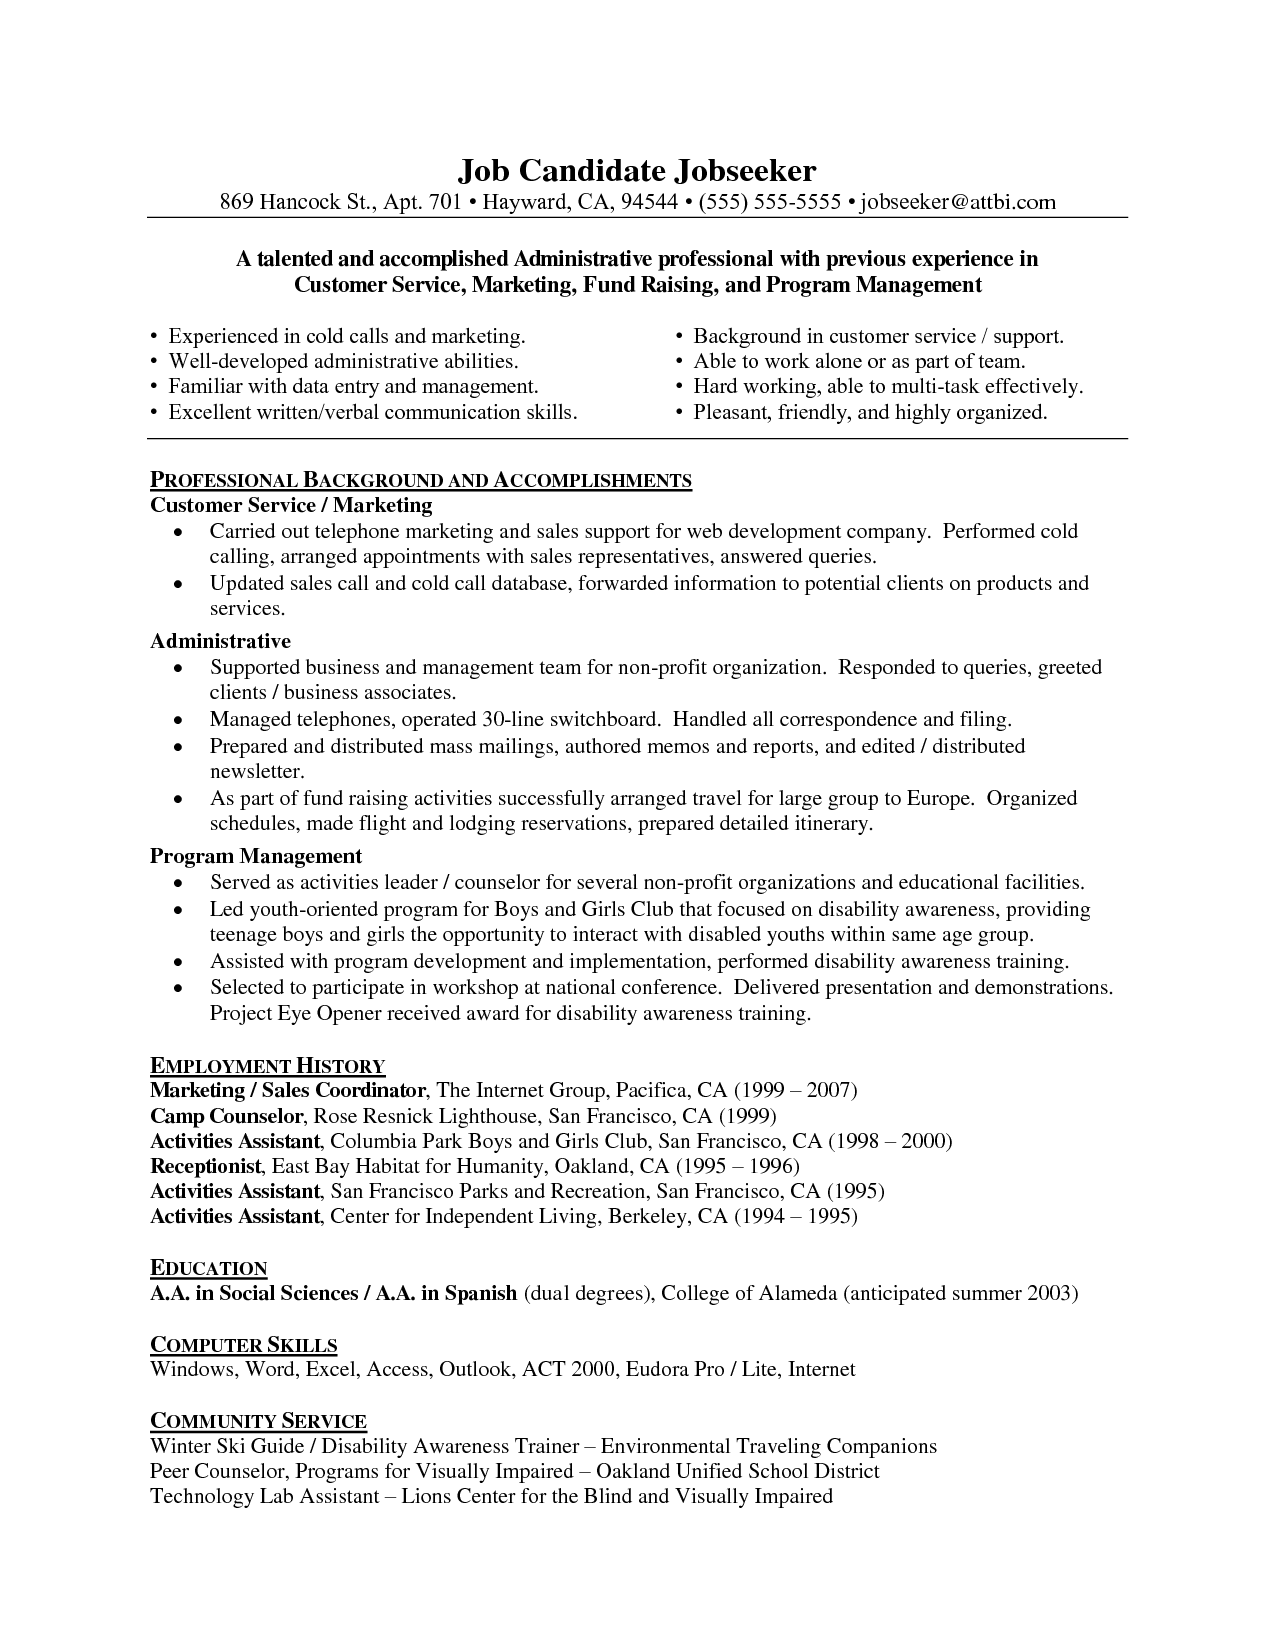 Write A Good Resume Objective Statement Free Sample Resume Cover  Resume Objective Customer Service